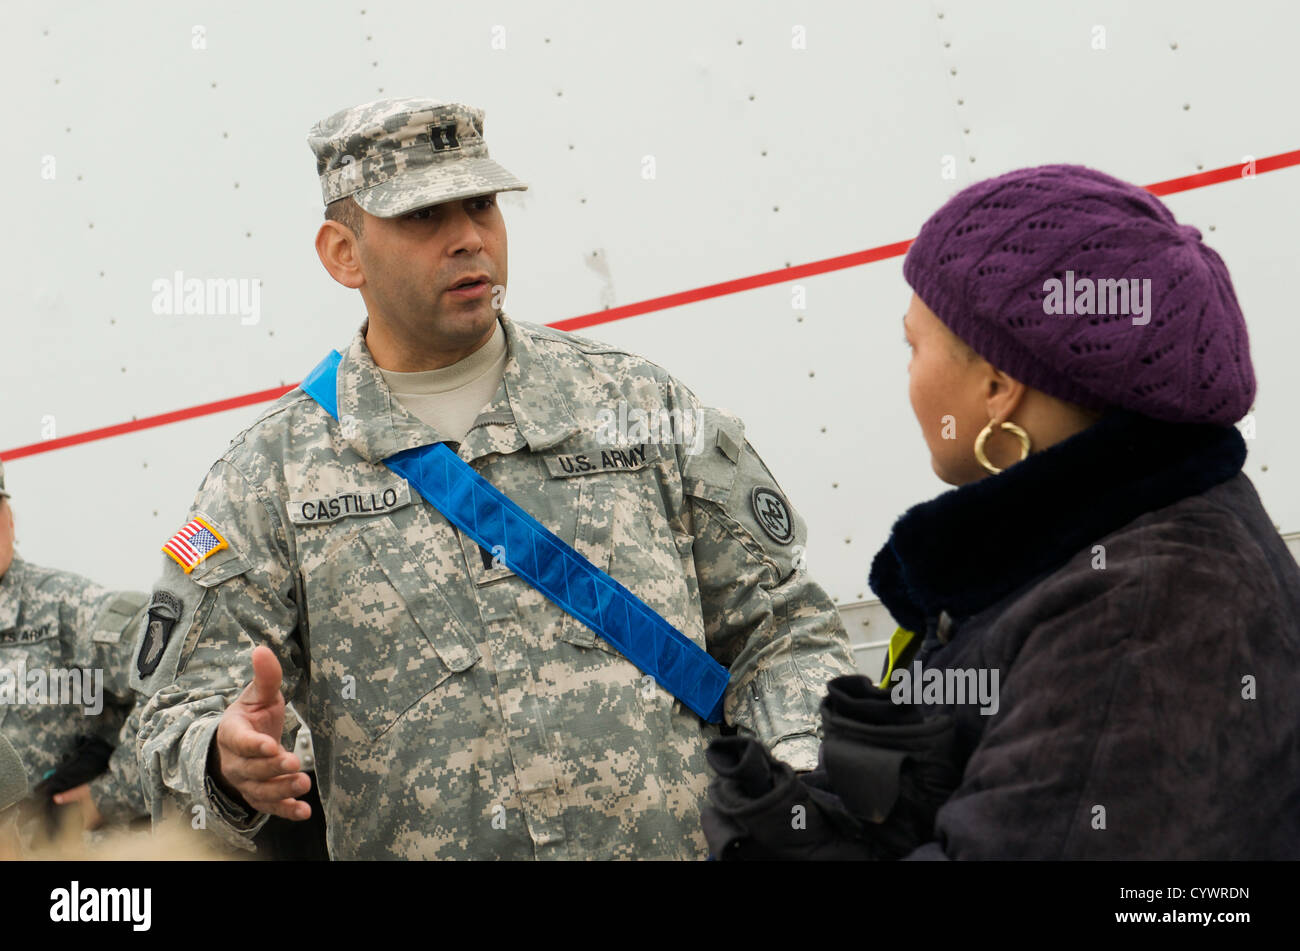 Army National Guard Capt. Rafael Castillo, HHC, 2nd Squardron, 101st Cavalry Regiment, speaks with Jeanine Sherwood, - Stock Image